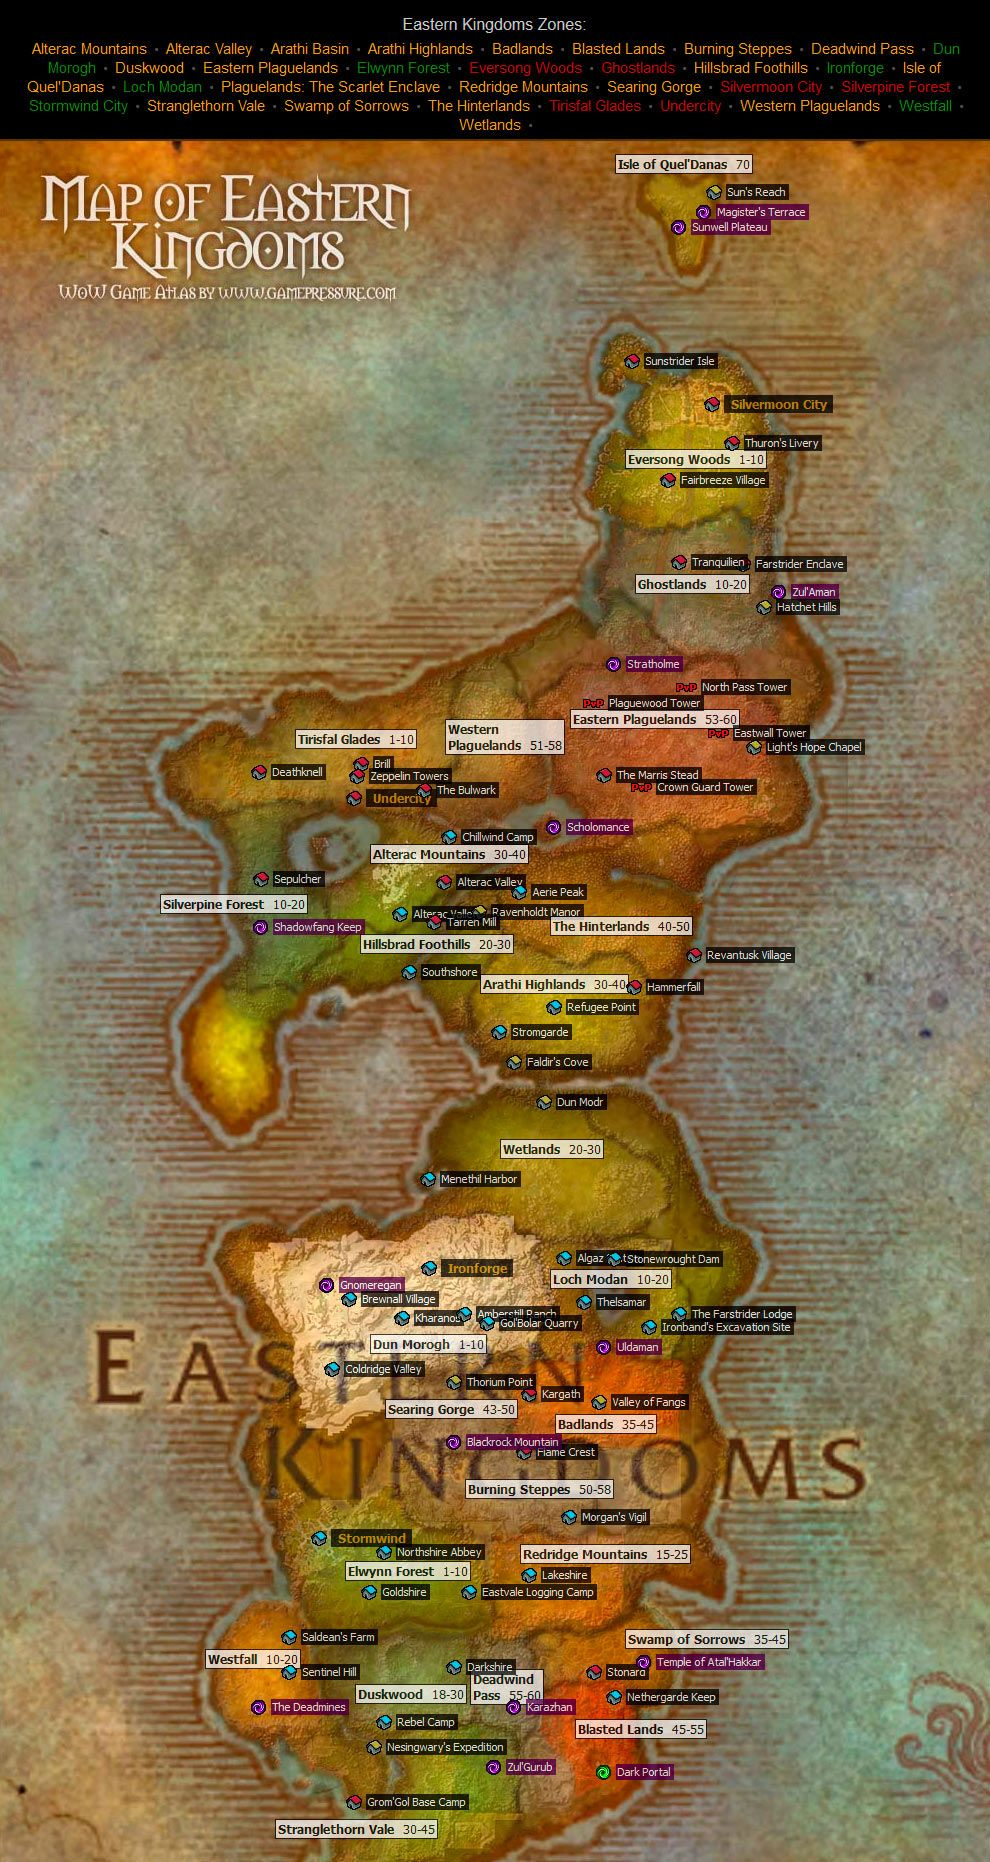 Eastern Kingdoms Map from World of Warcraft